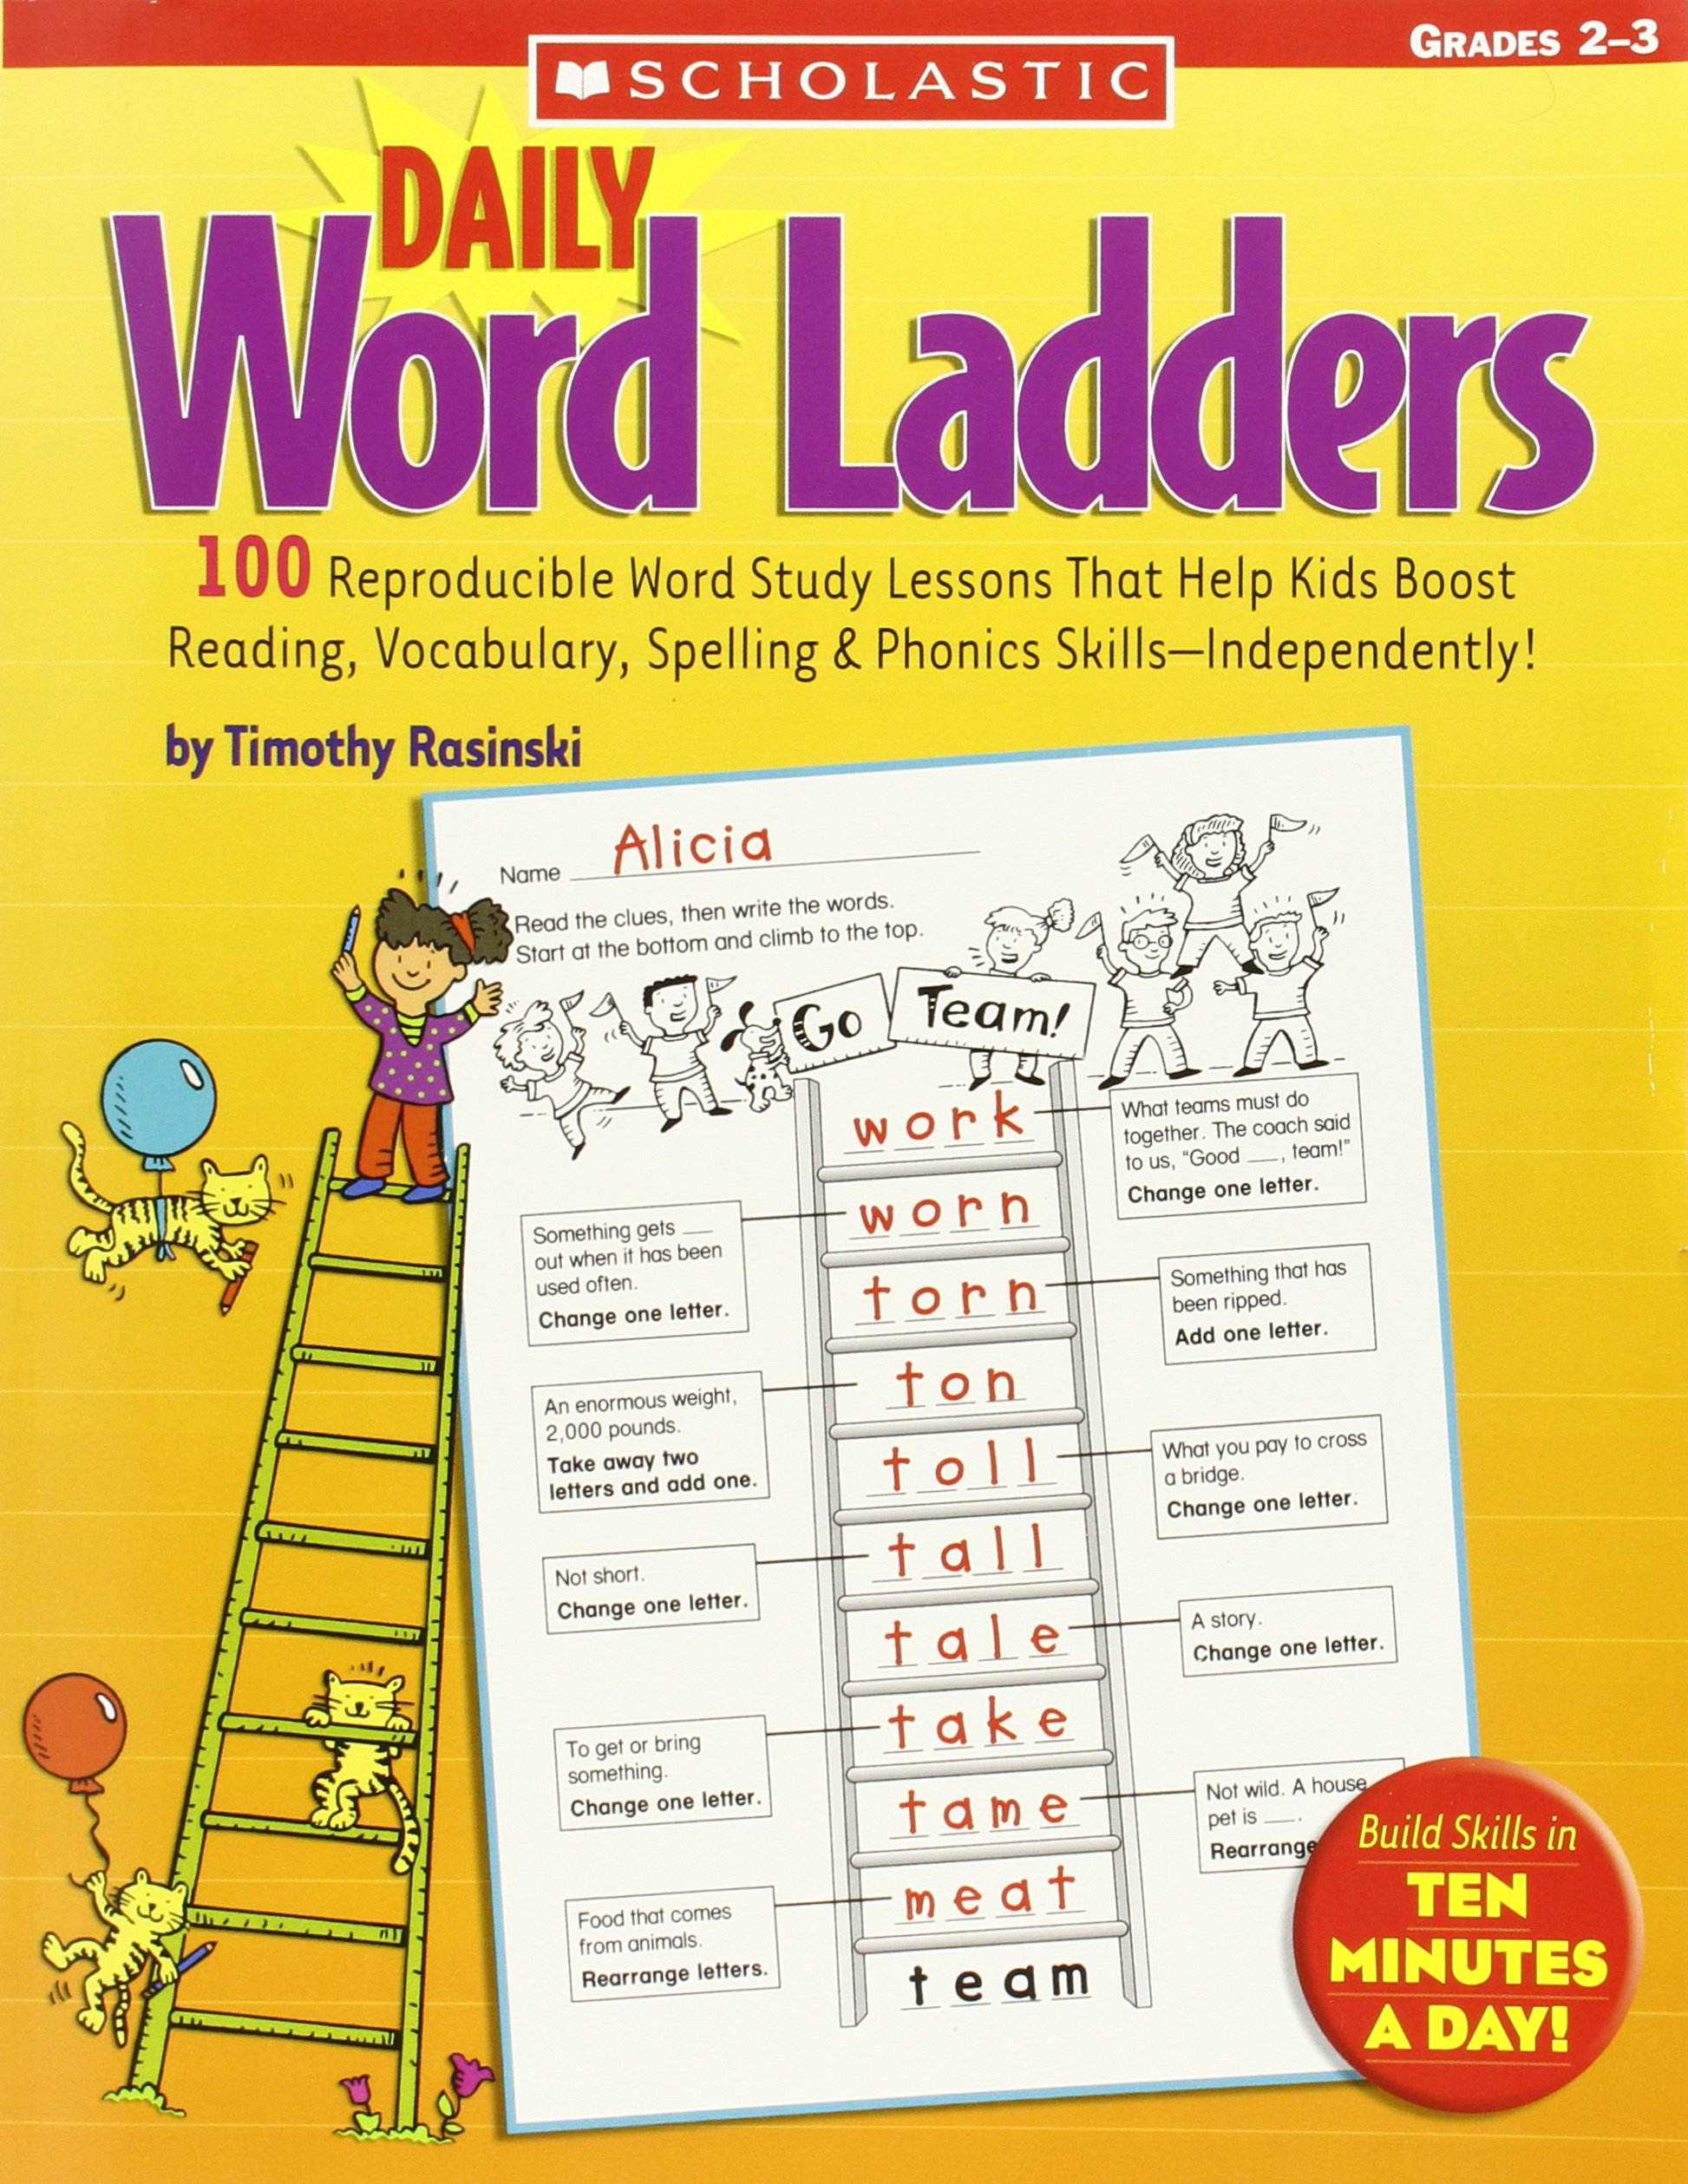 Worksheets Word Ladders Worksheets word ladder homework writing service gncourseworkxqdp getfiredband us ladder